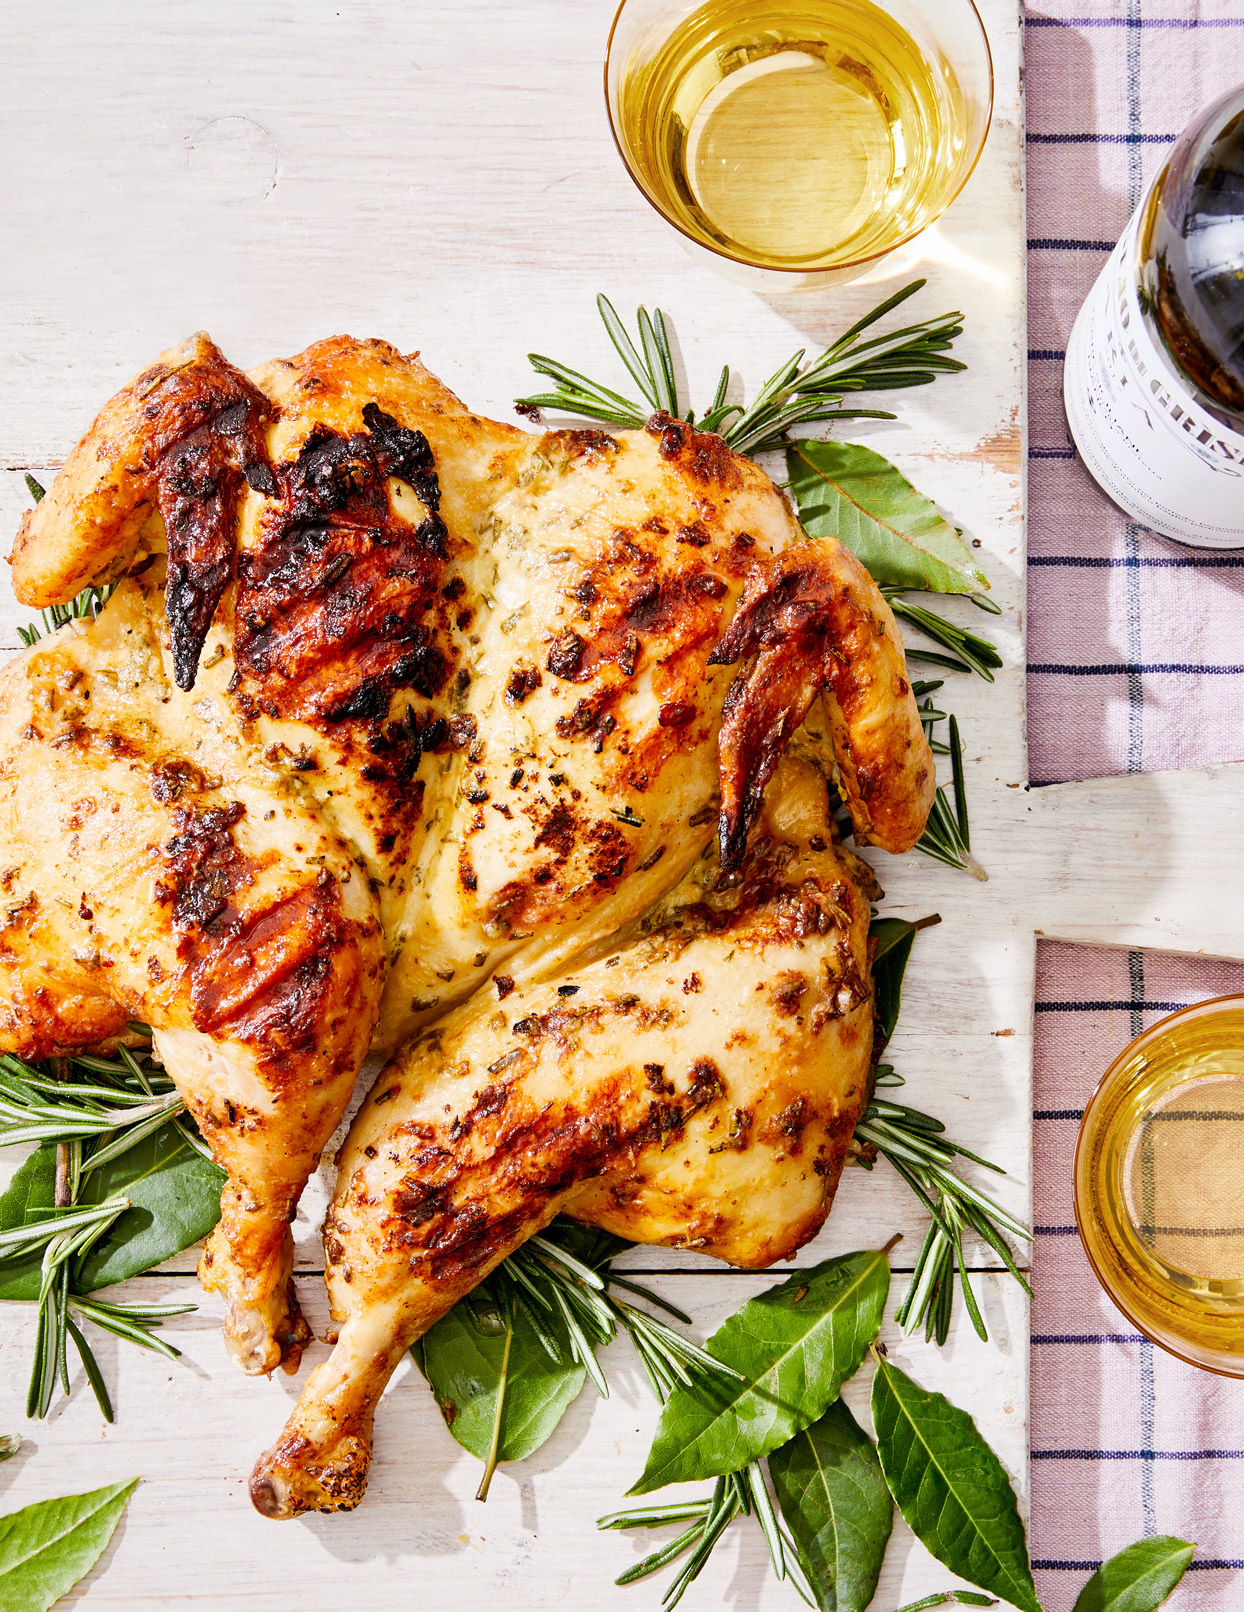 grilled spatchcock chicken with dijon and rosemary